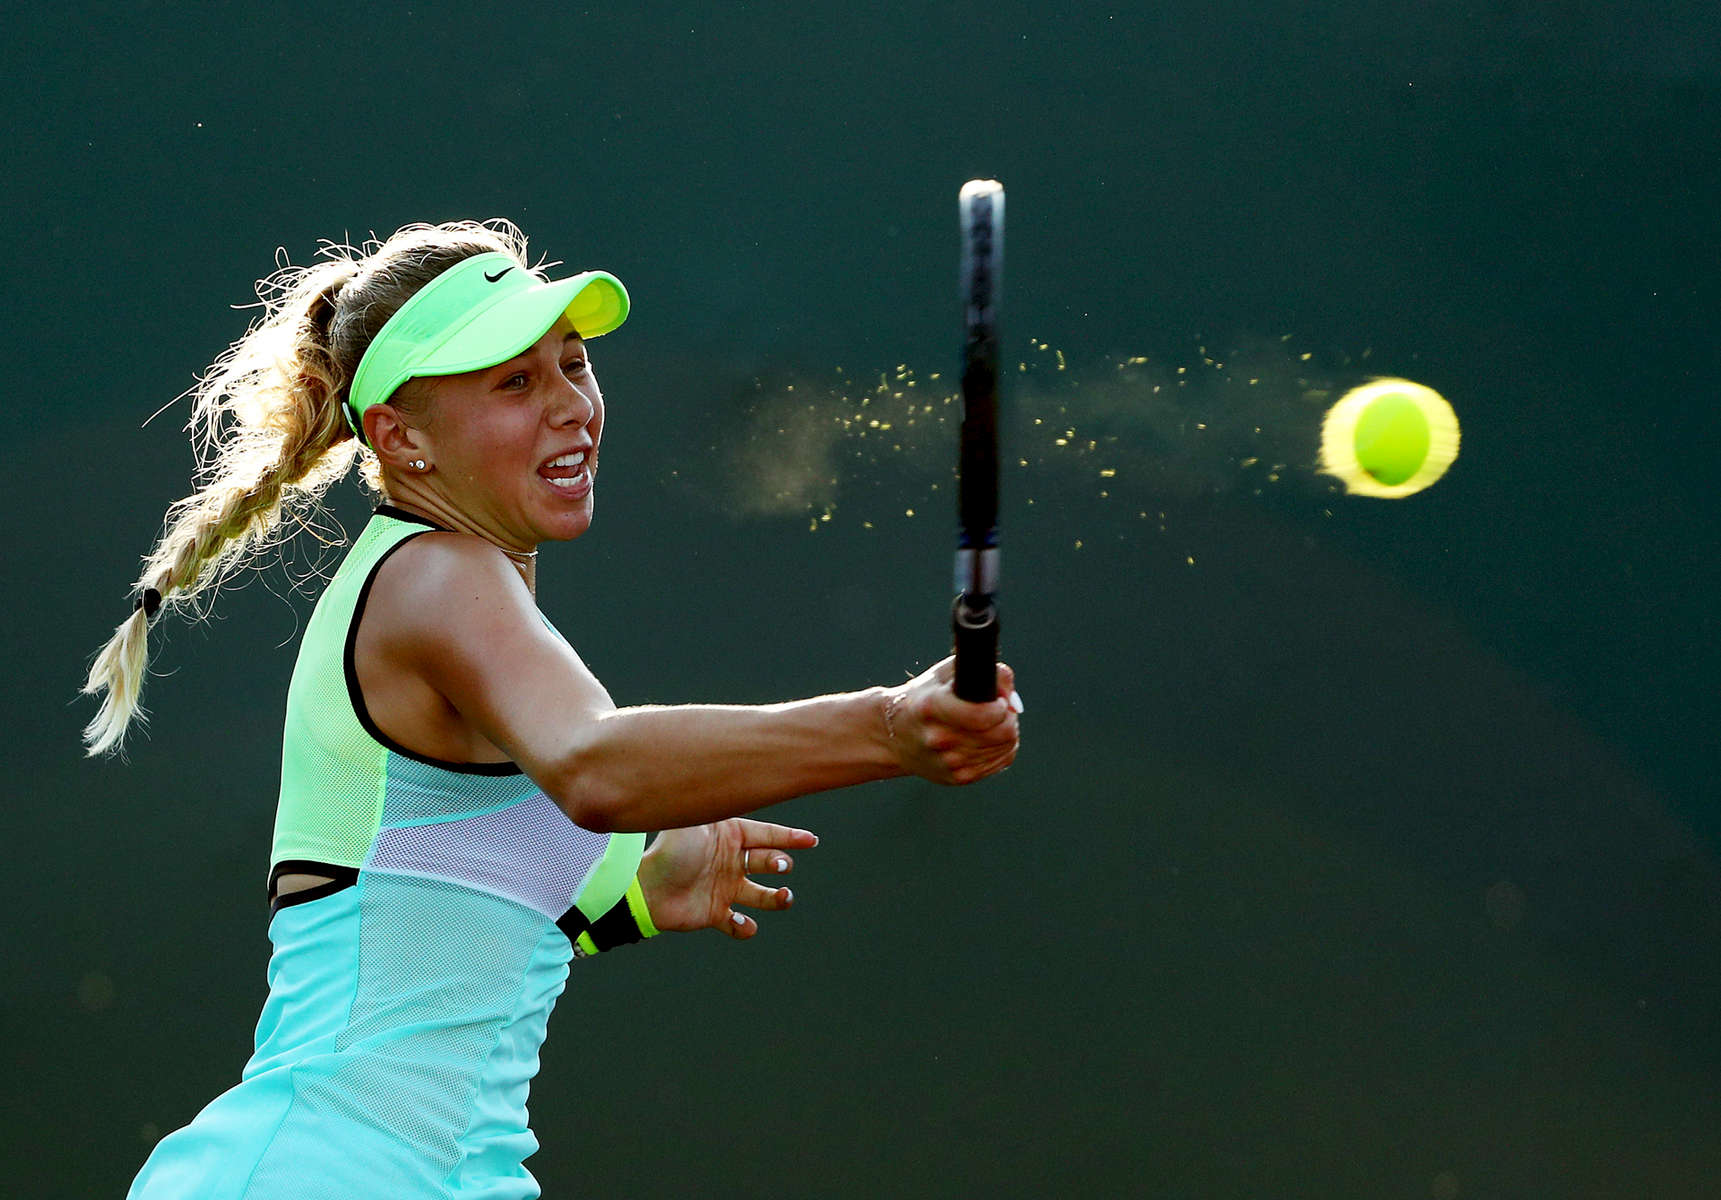 Amanda Anisimova returns a shot against Taylor Townsend  during day 3 of the Miami Open at Crandon Park Tennis Center on March 22, 2017 in Key Biscayne, Florida.